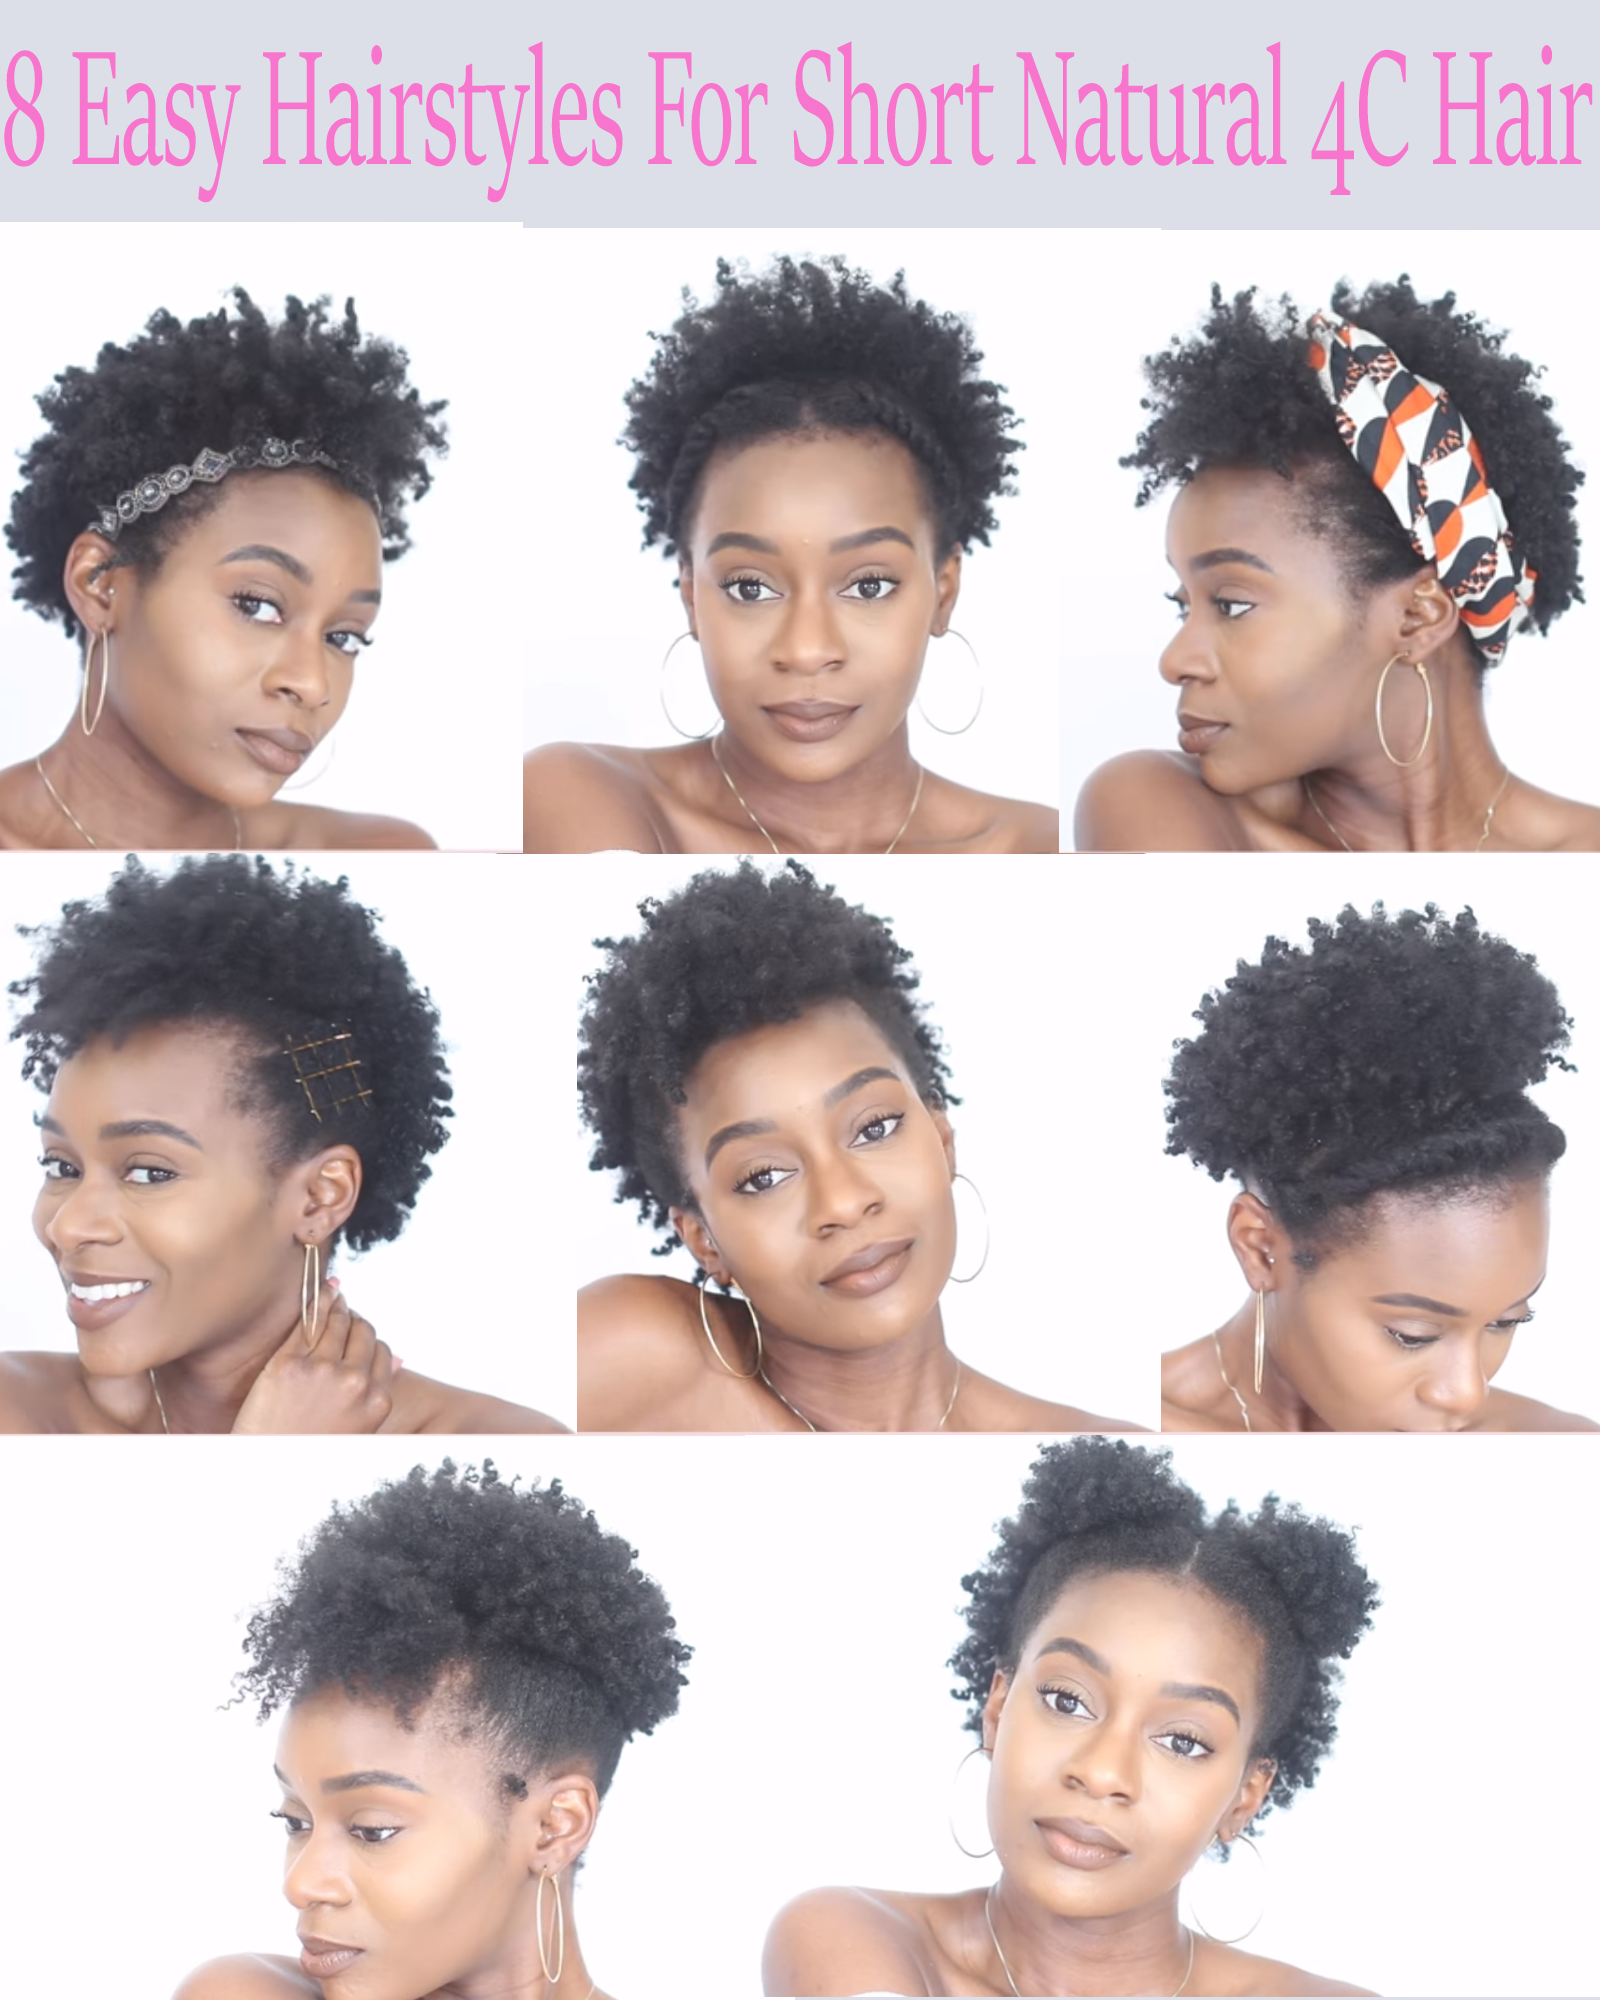 8 Easy Protective Hairstyles For Short Natural 4c Hair That Will Not Damage Your Edges African American Hairstyle Videos Aahv Natural Hair Styles Easy 4c Natural Hairstyles Short Natural